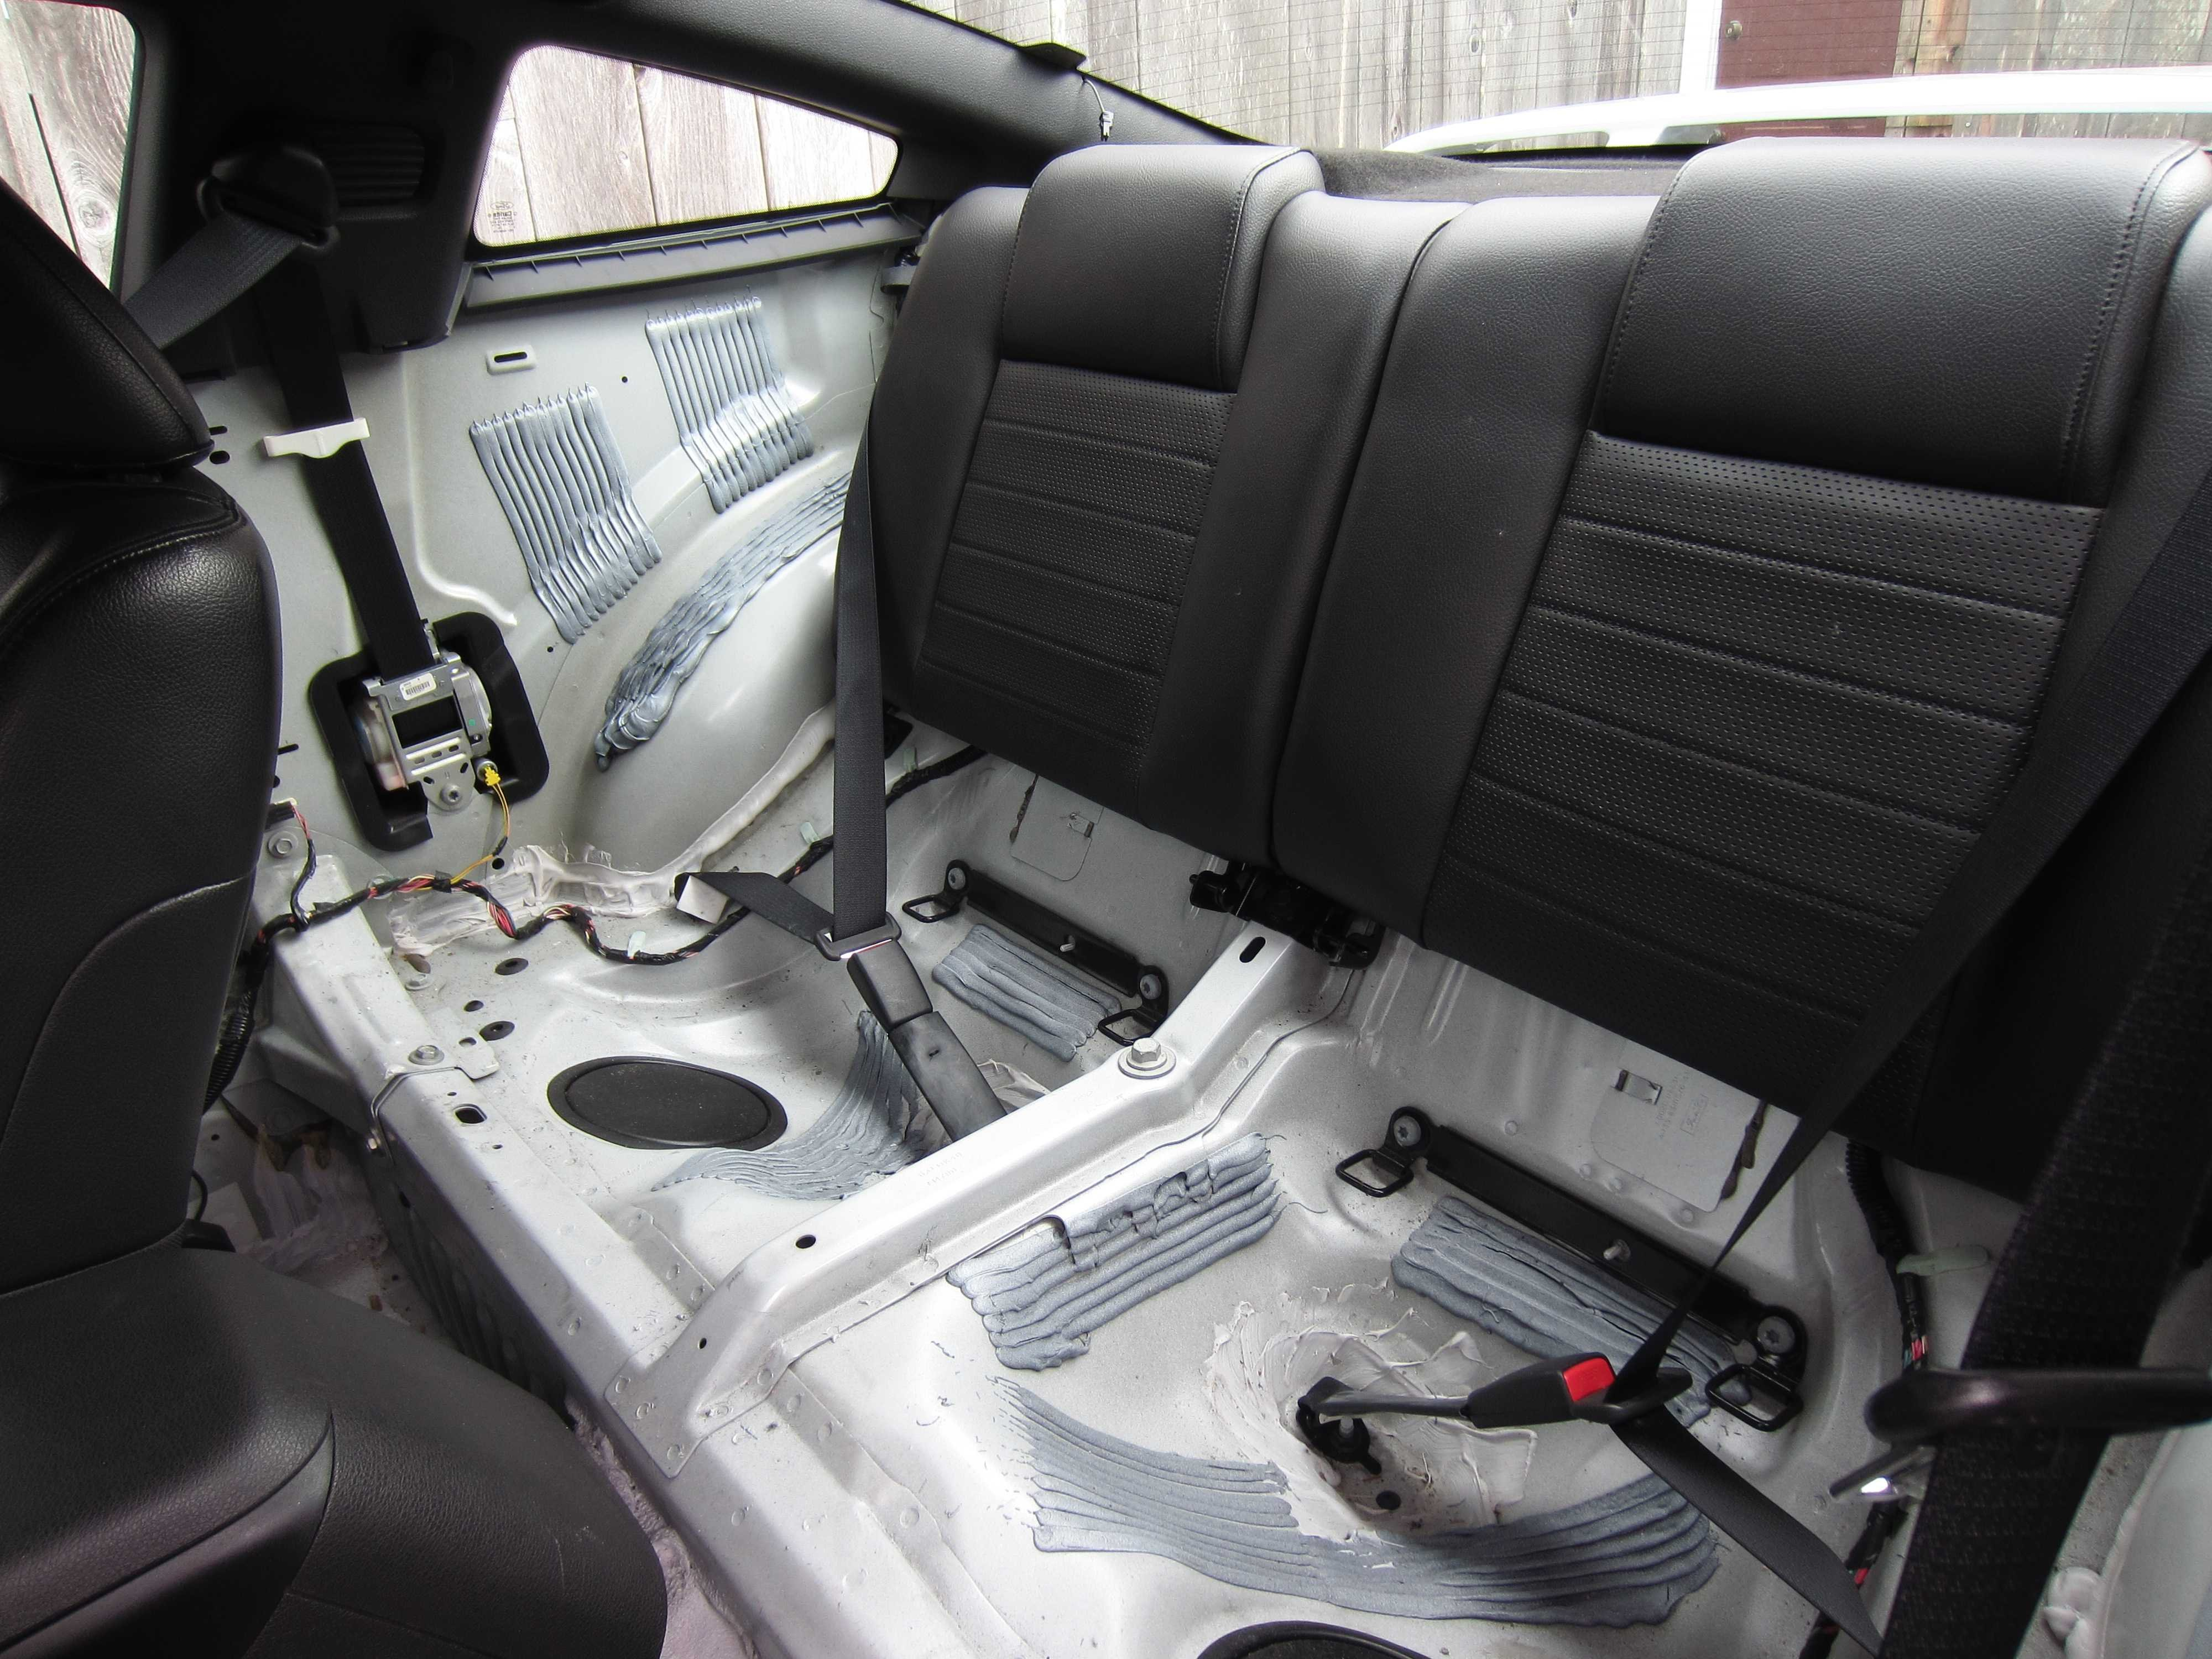 Do you put seat covers over your leather?-img_9201-2.jpg